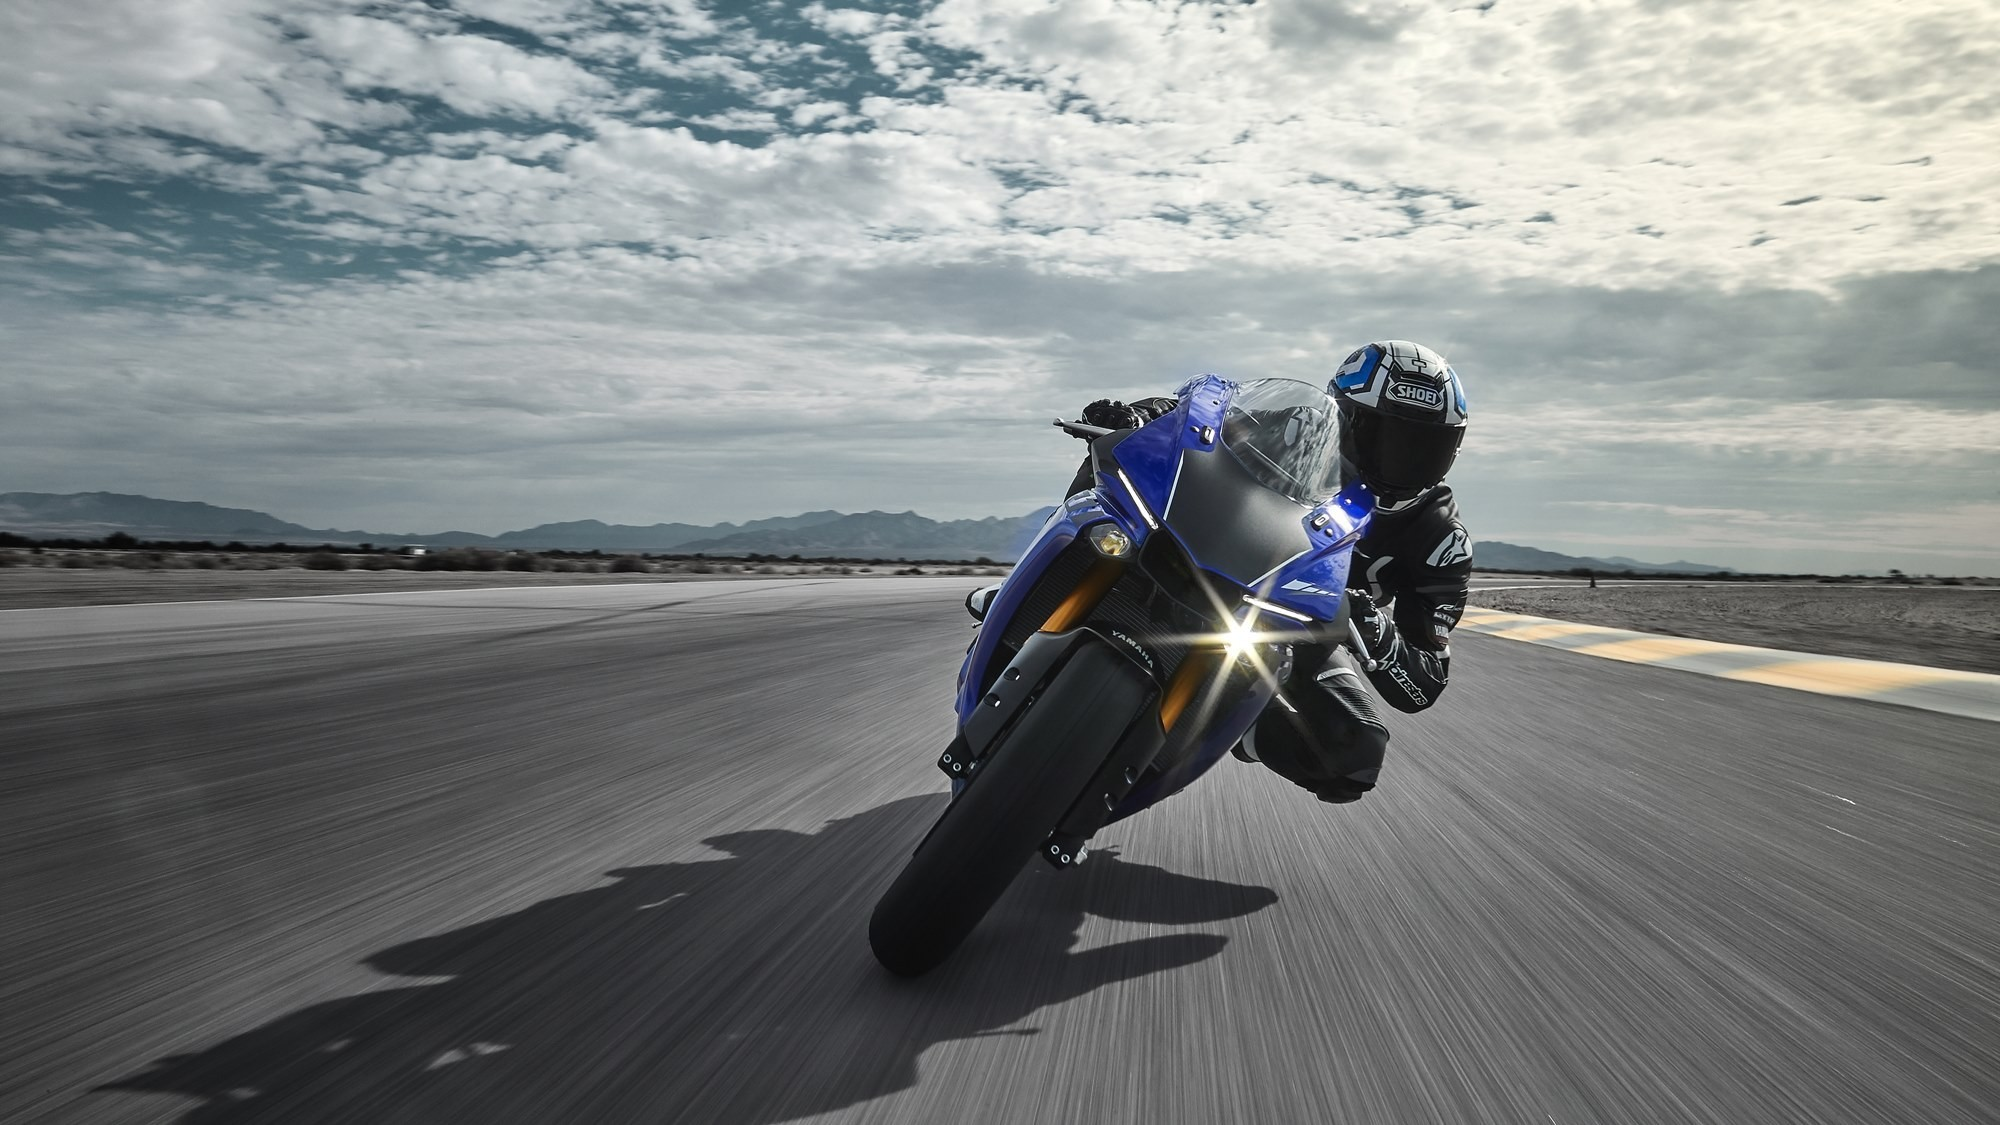 Res: 2000x1125, 2018 Yamaha YZF-R1 images